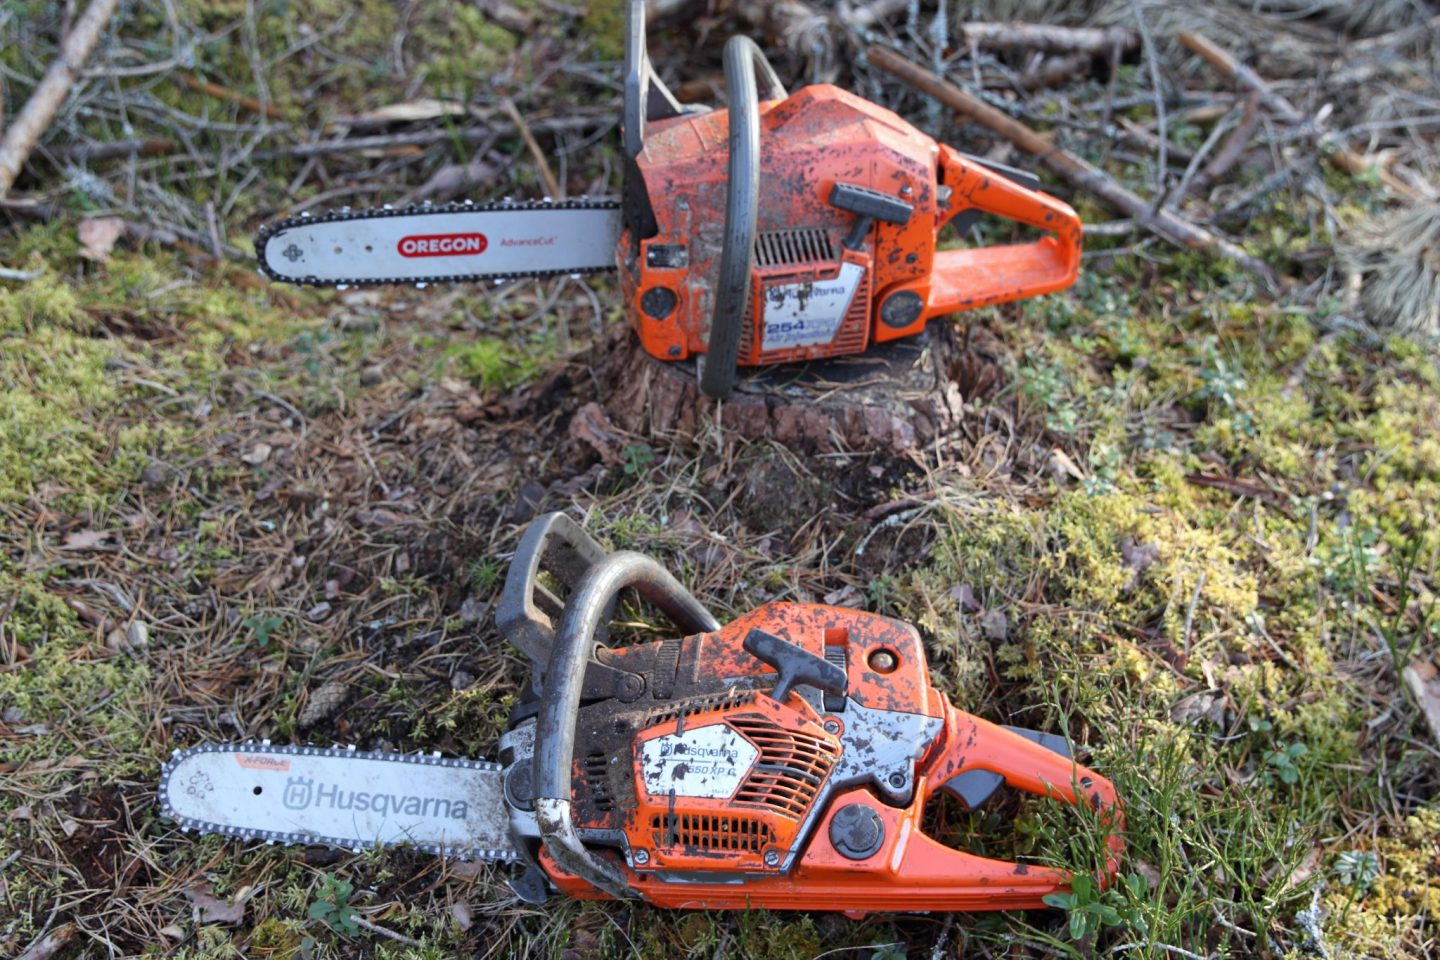 I miss my chainsaws!!